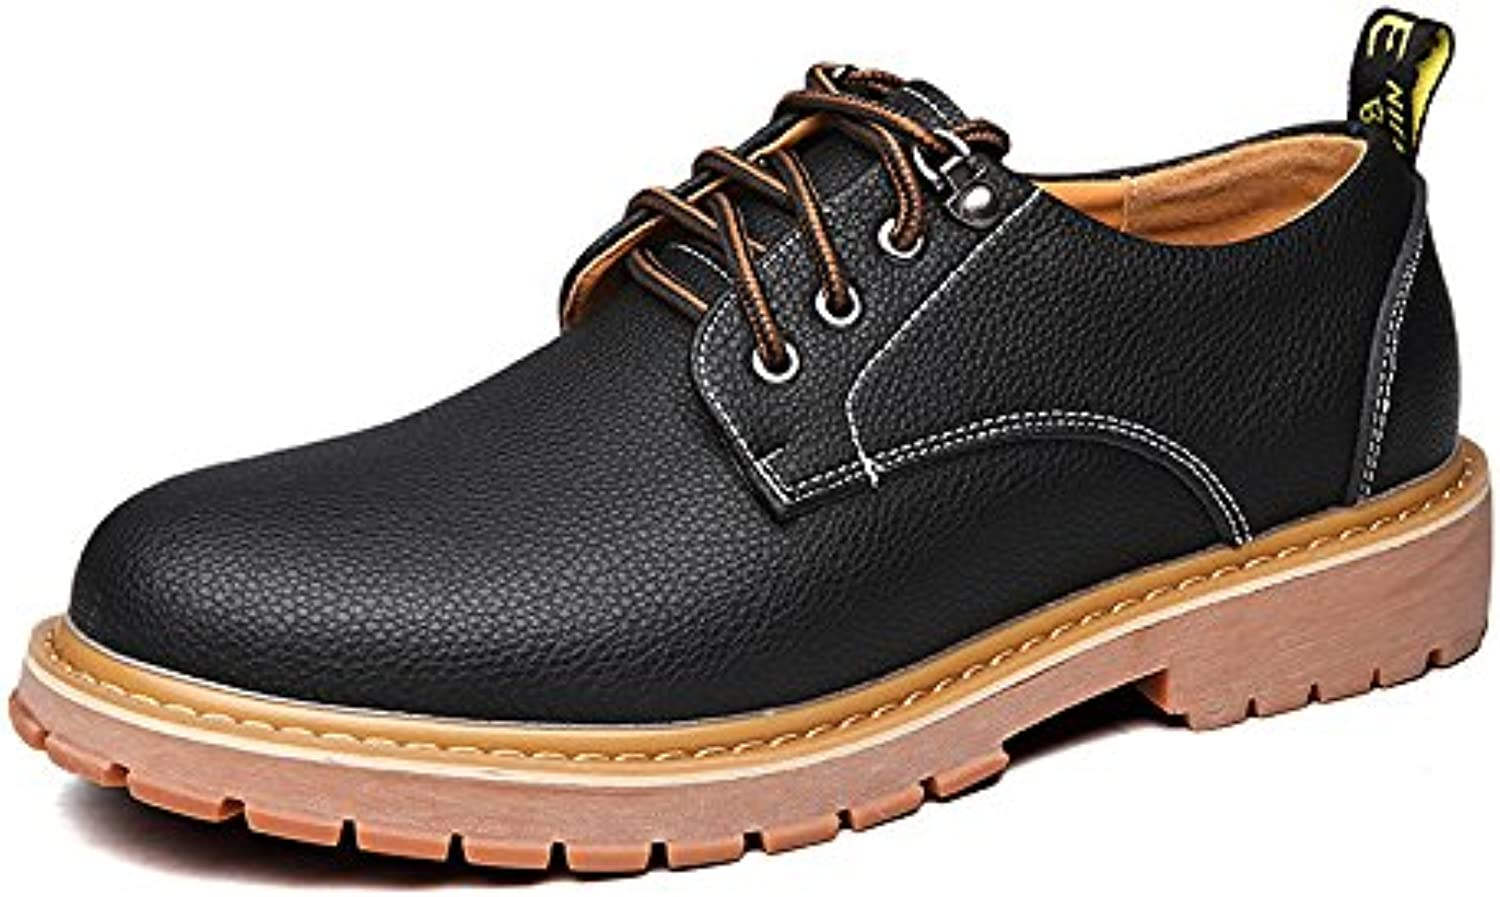 Jiuyue shoes  Sommer 2018 Herren Arbeitsschuhe PU Leder Casual Lace up Soft Outsole Wohnungen (Color : Schwarz